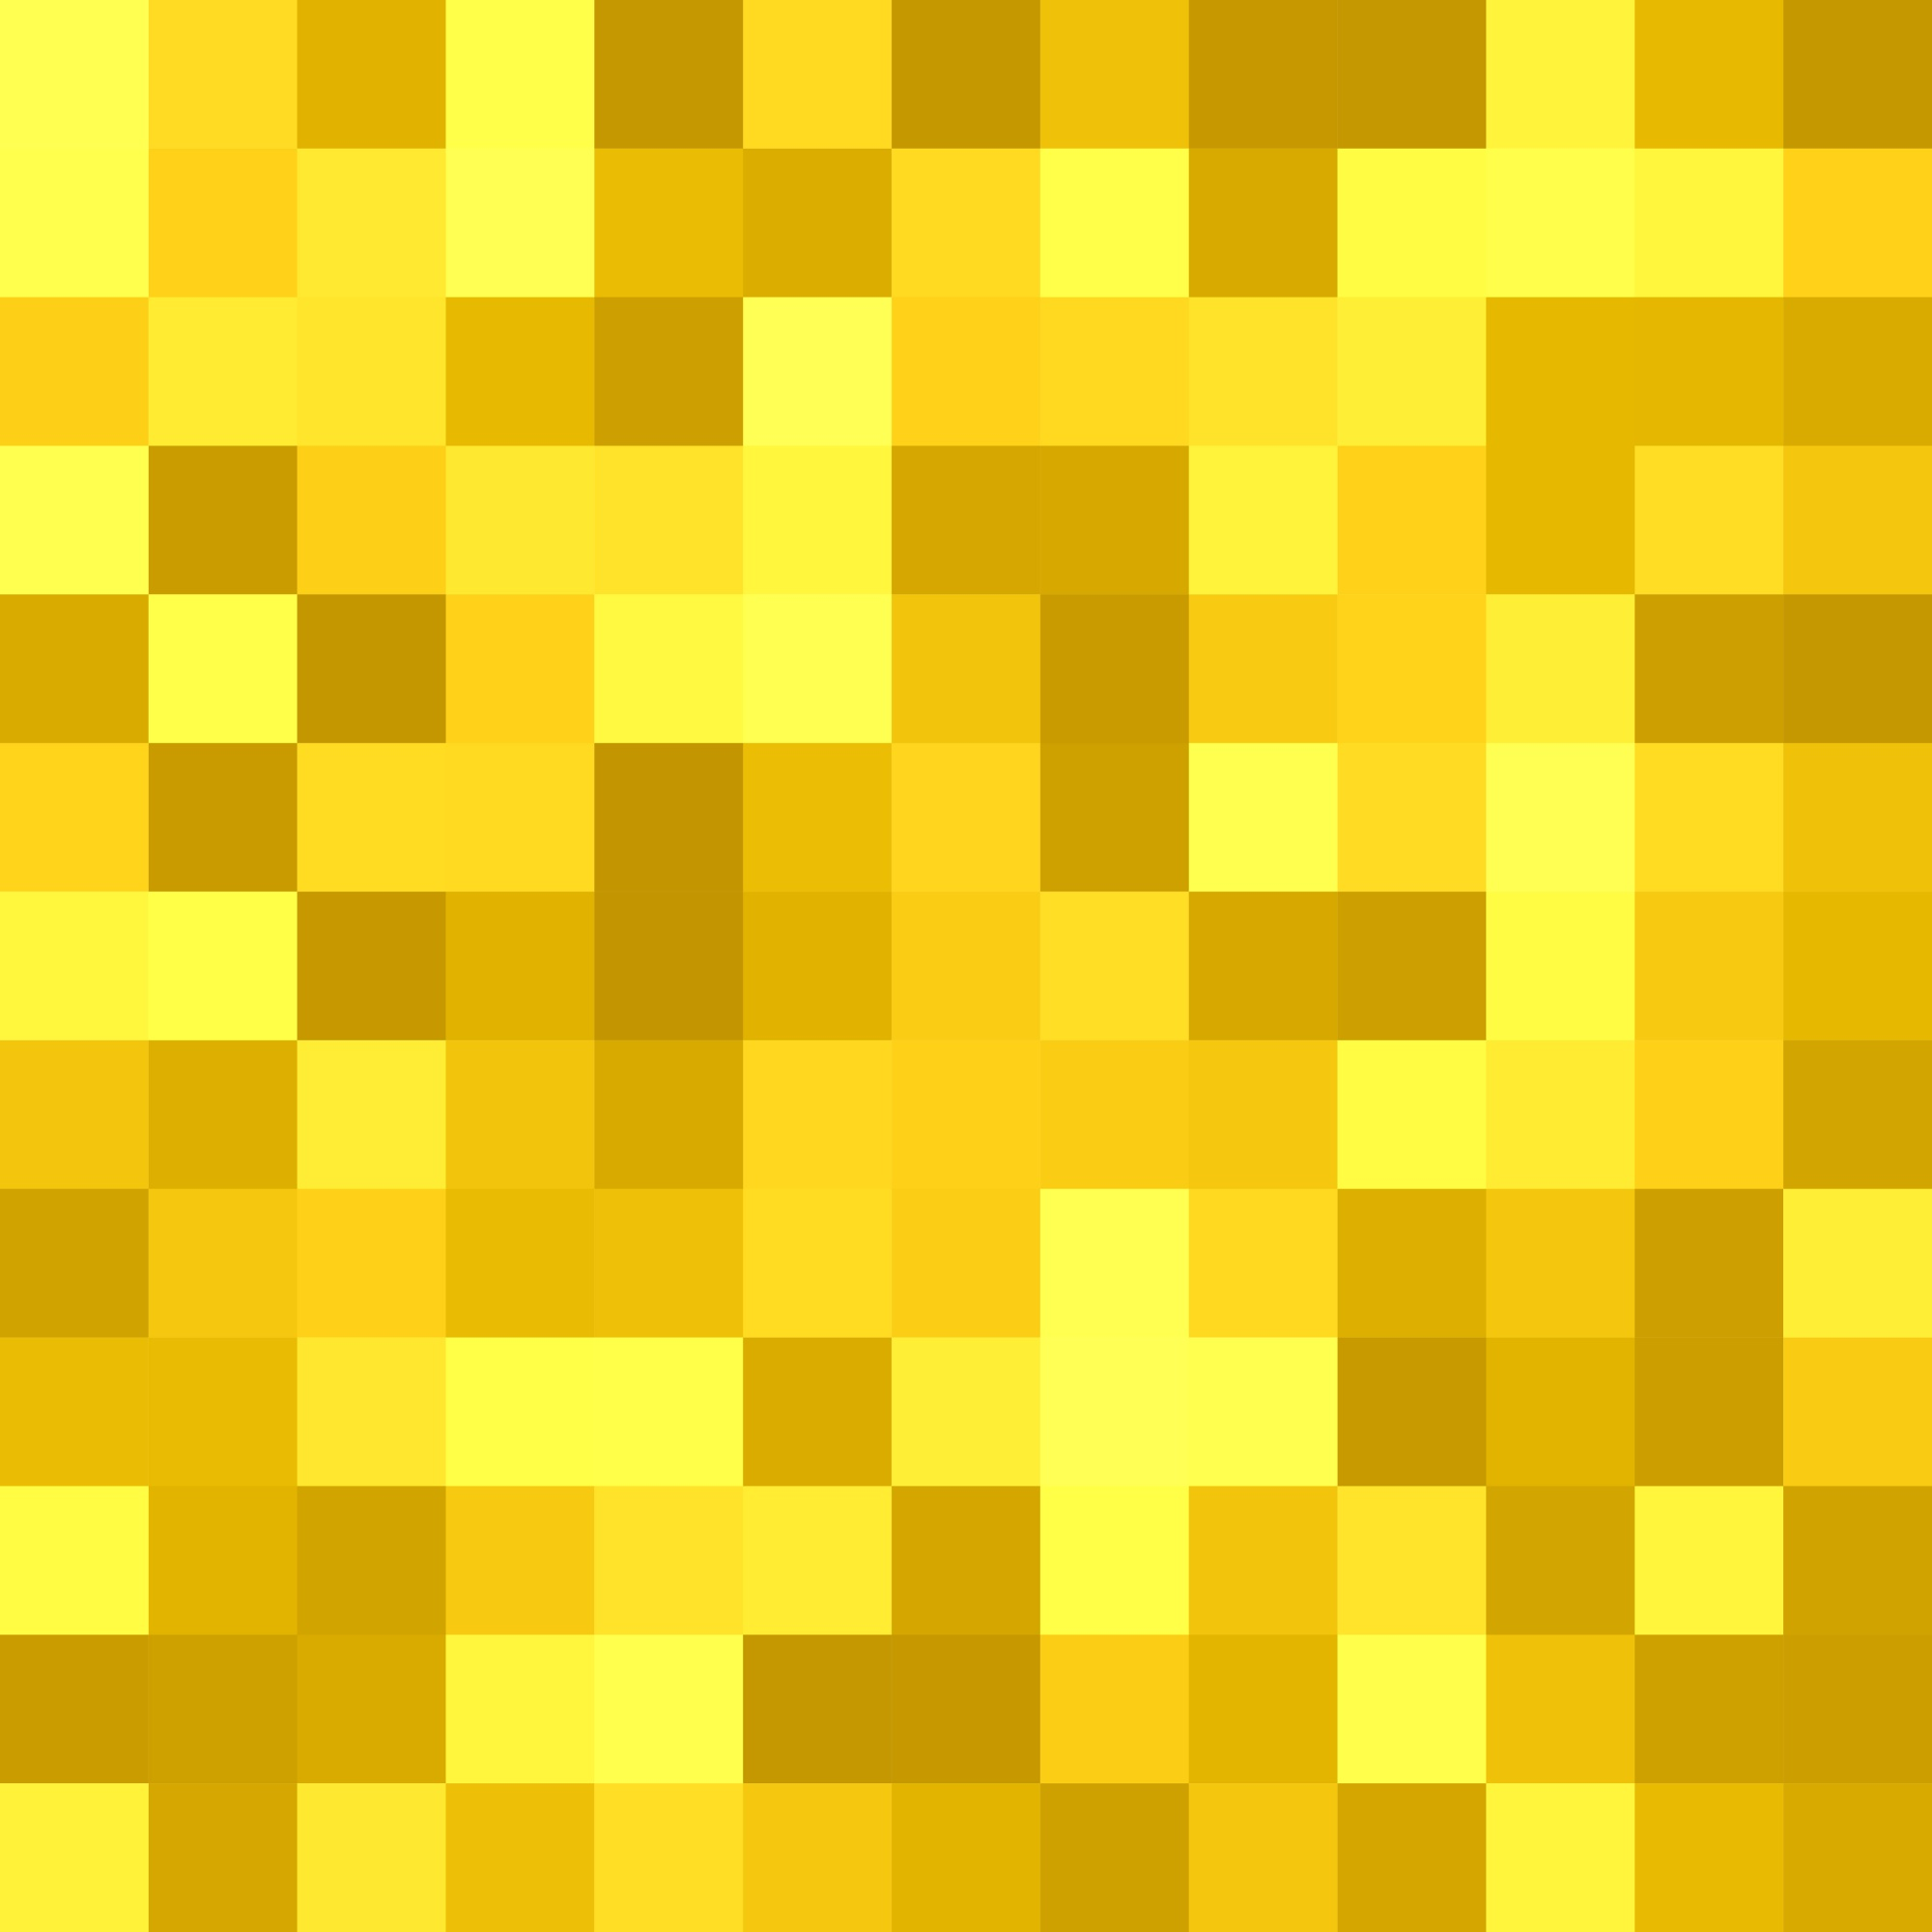 Geometrical square tiled background - vector graphic design from squares in golden tones